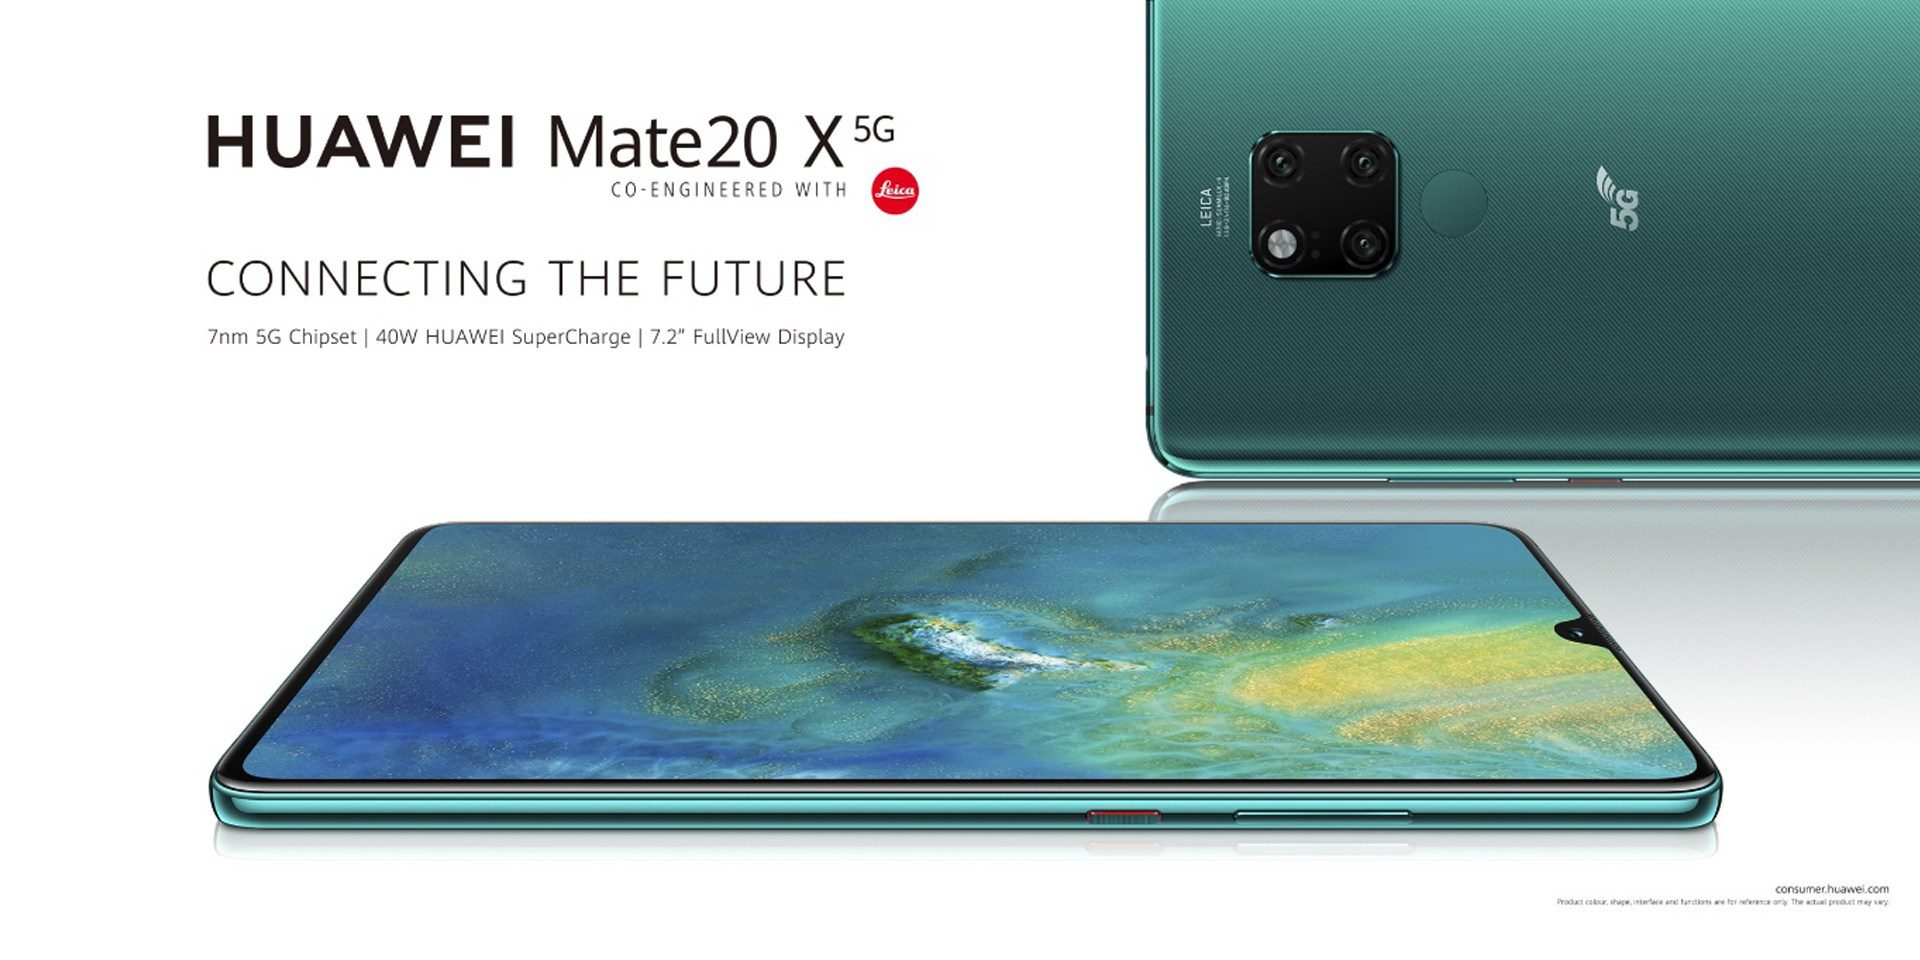 Sforum - Latest technology information page Huawei-Mate-20X-5G Huawei Mate 20X 5G version 2 certified sim in China, launched in the next few weeks